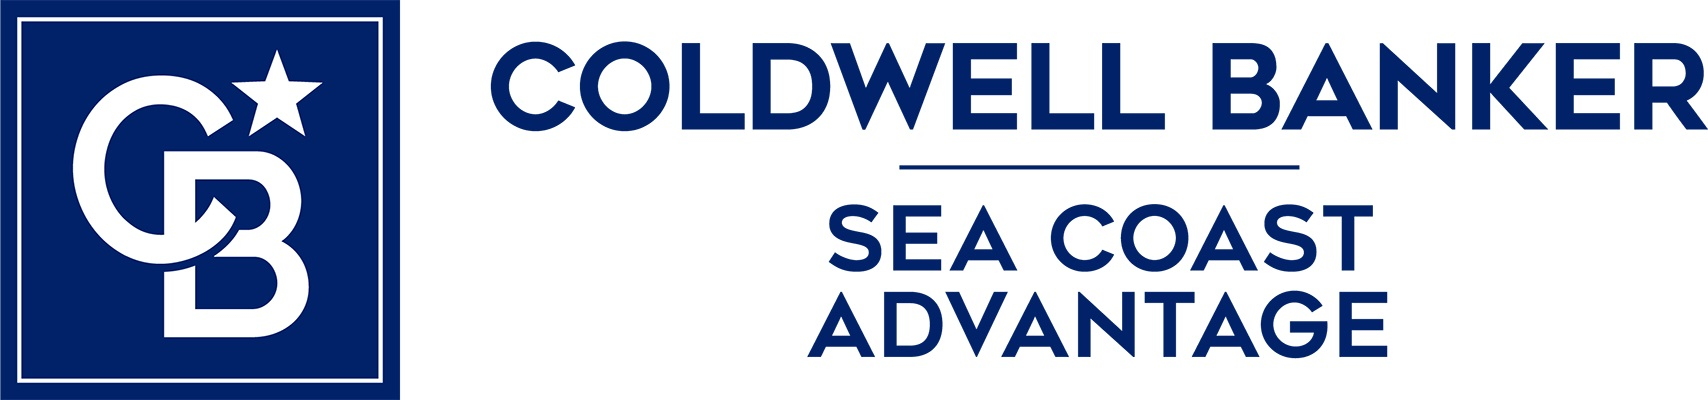 Melanie Spencer - Coldwell Banker Sea Coast Advantage Realty